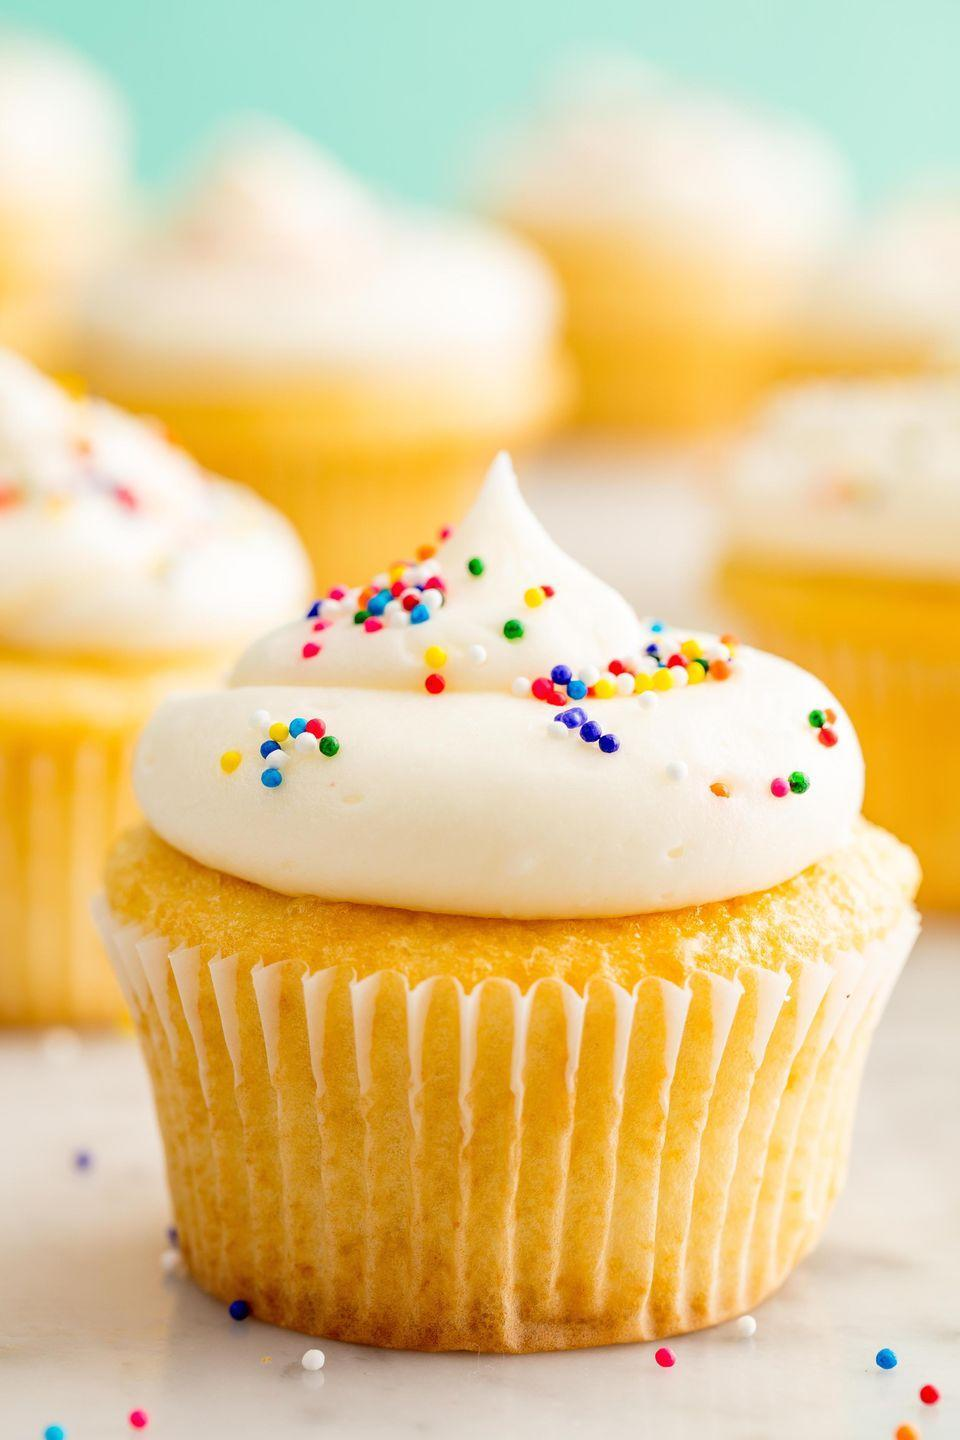 """<p>For the cupcake purists. </p><p>Get the recipe from <a href=""""https://www.delish.com/cooking/recipe-ideas/recipes/a58184/perfect-vanilla-cupcakes-recipe/"""" rel=""""nofollow noopener"""" target=""""_blank"""" data-ylk=""""slk:Delish"""" class=""""link rapid-noclick-resp"""">Delish</a>.</p>"""